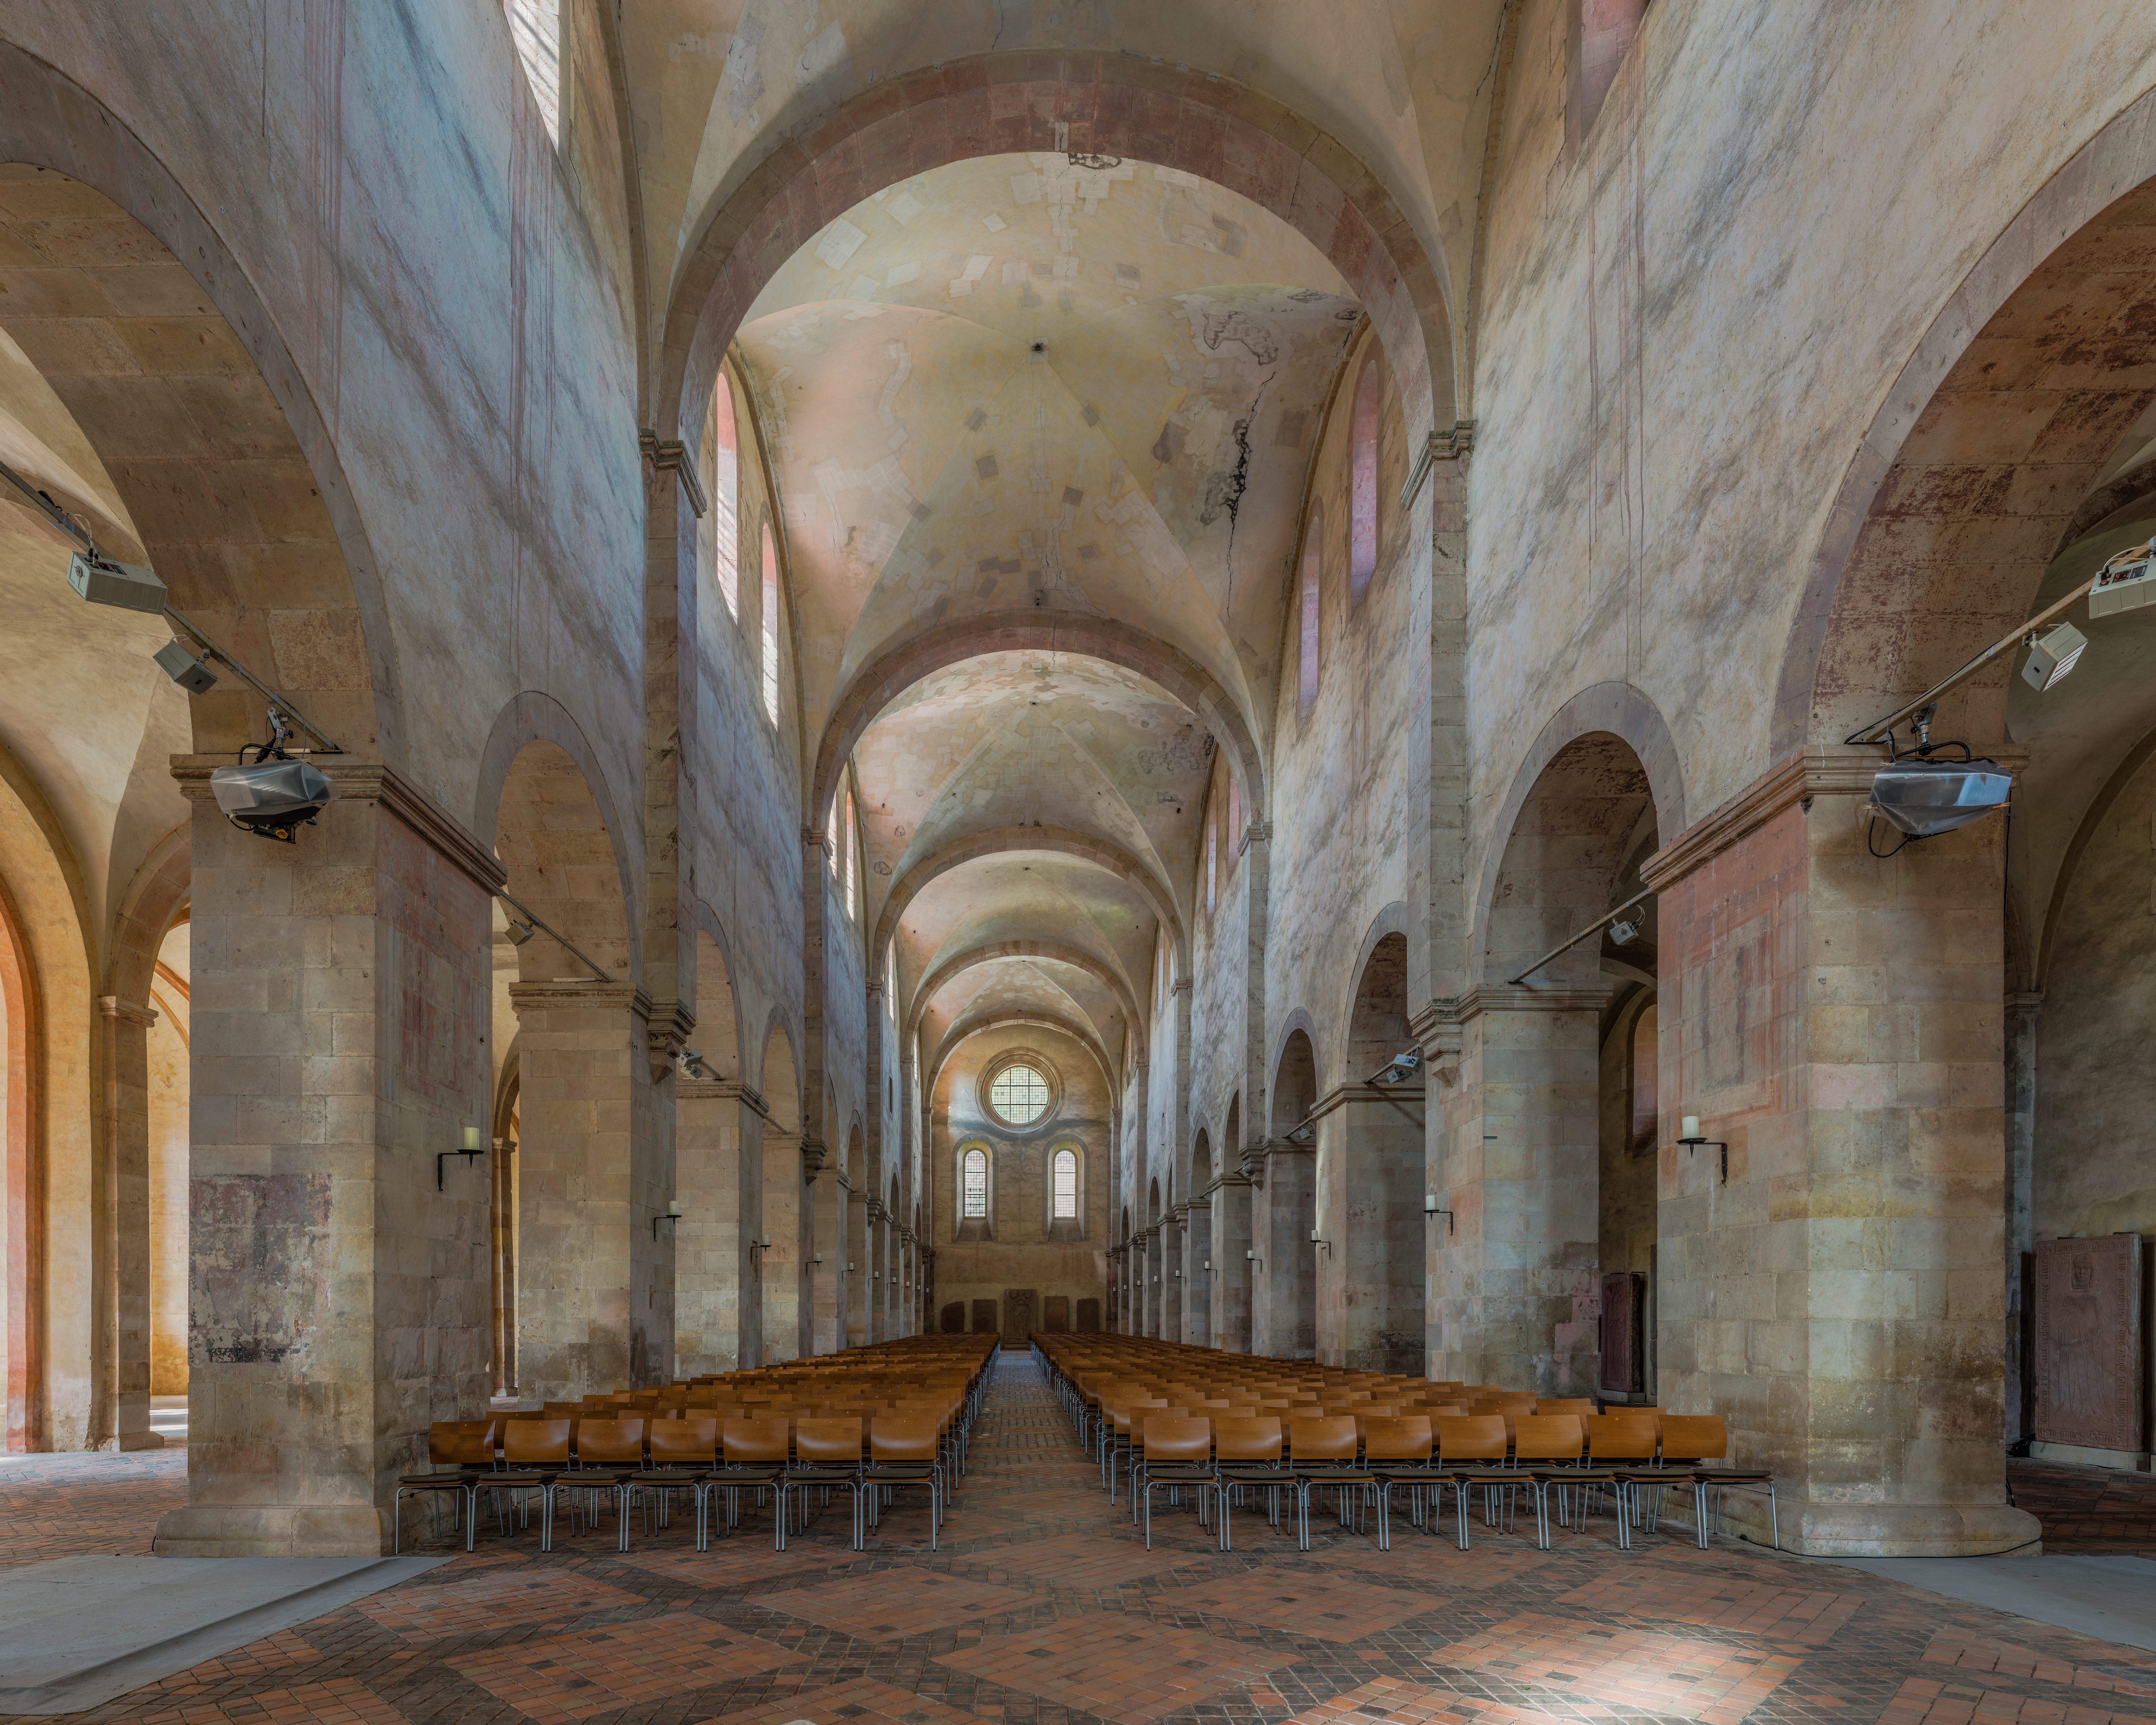 Datei:Nave of the Basilica, Kloster Eberbach 20140903 1.jpg – Wikipedia